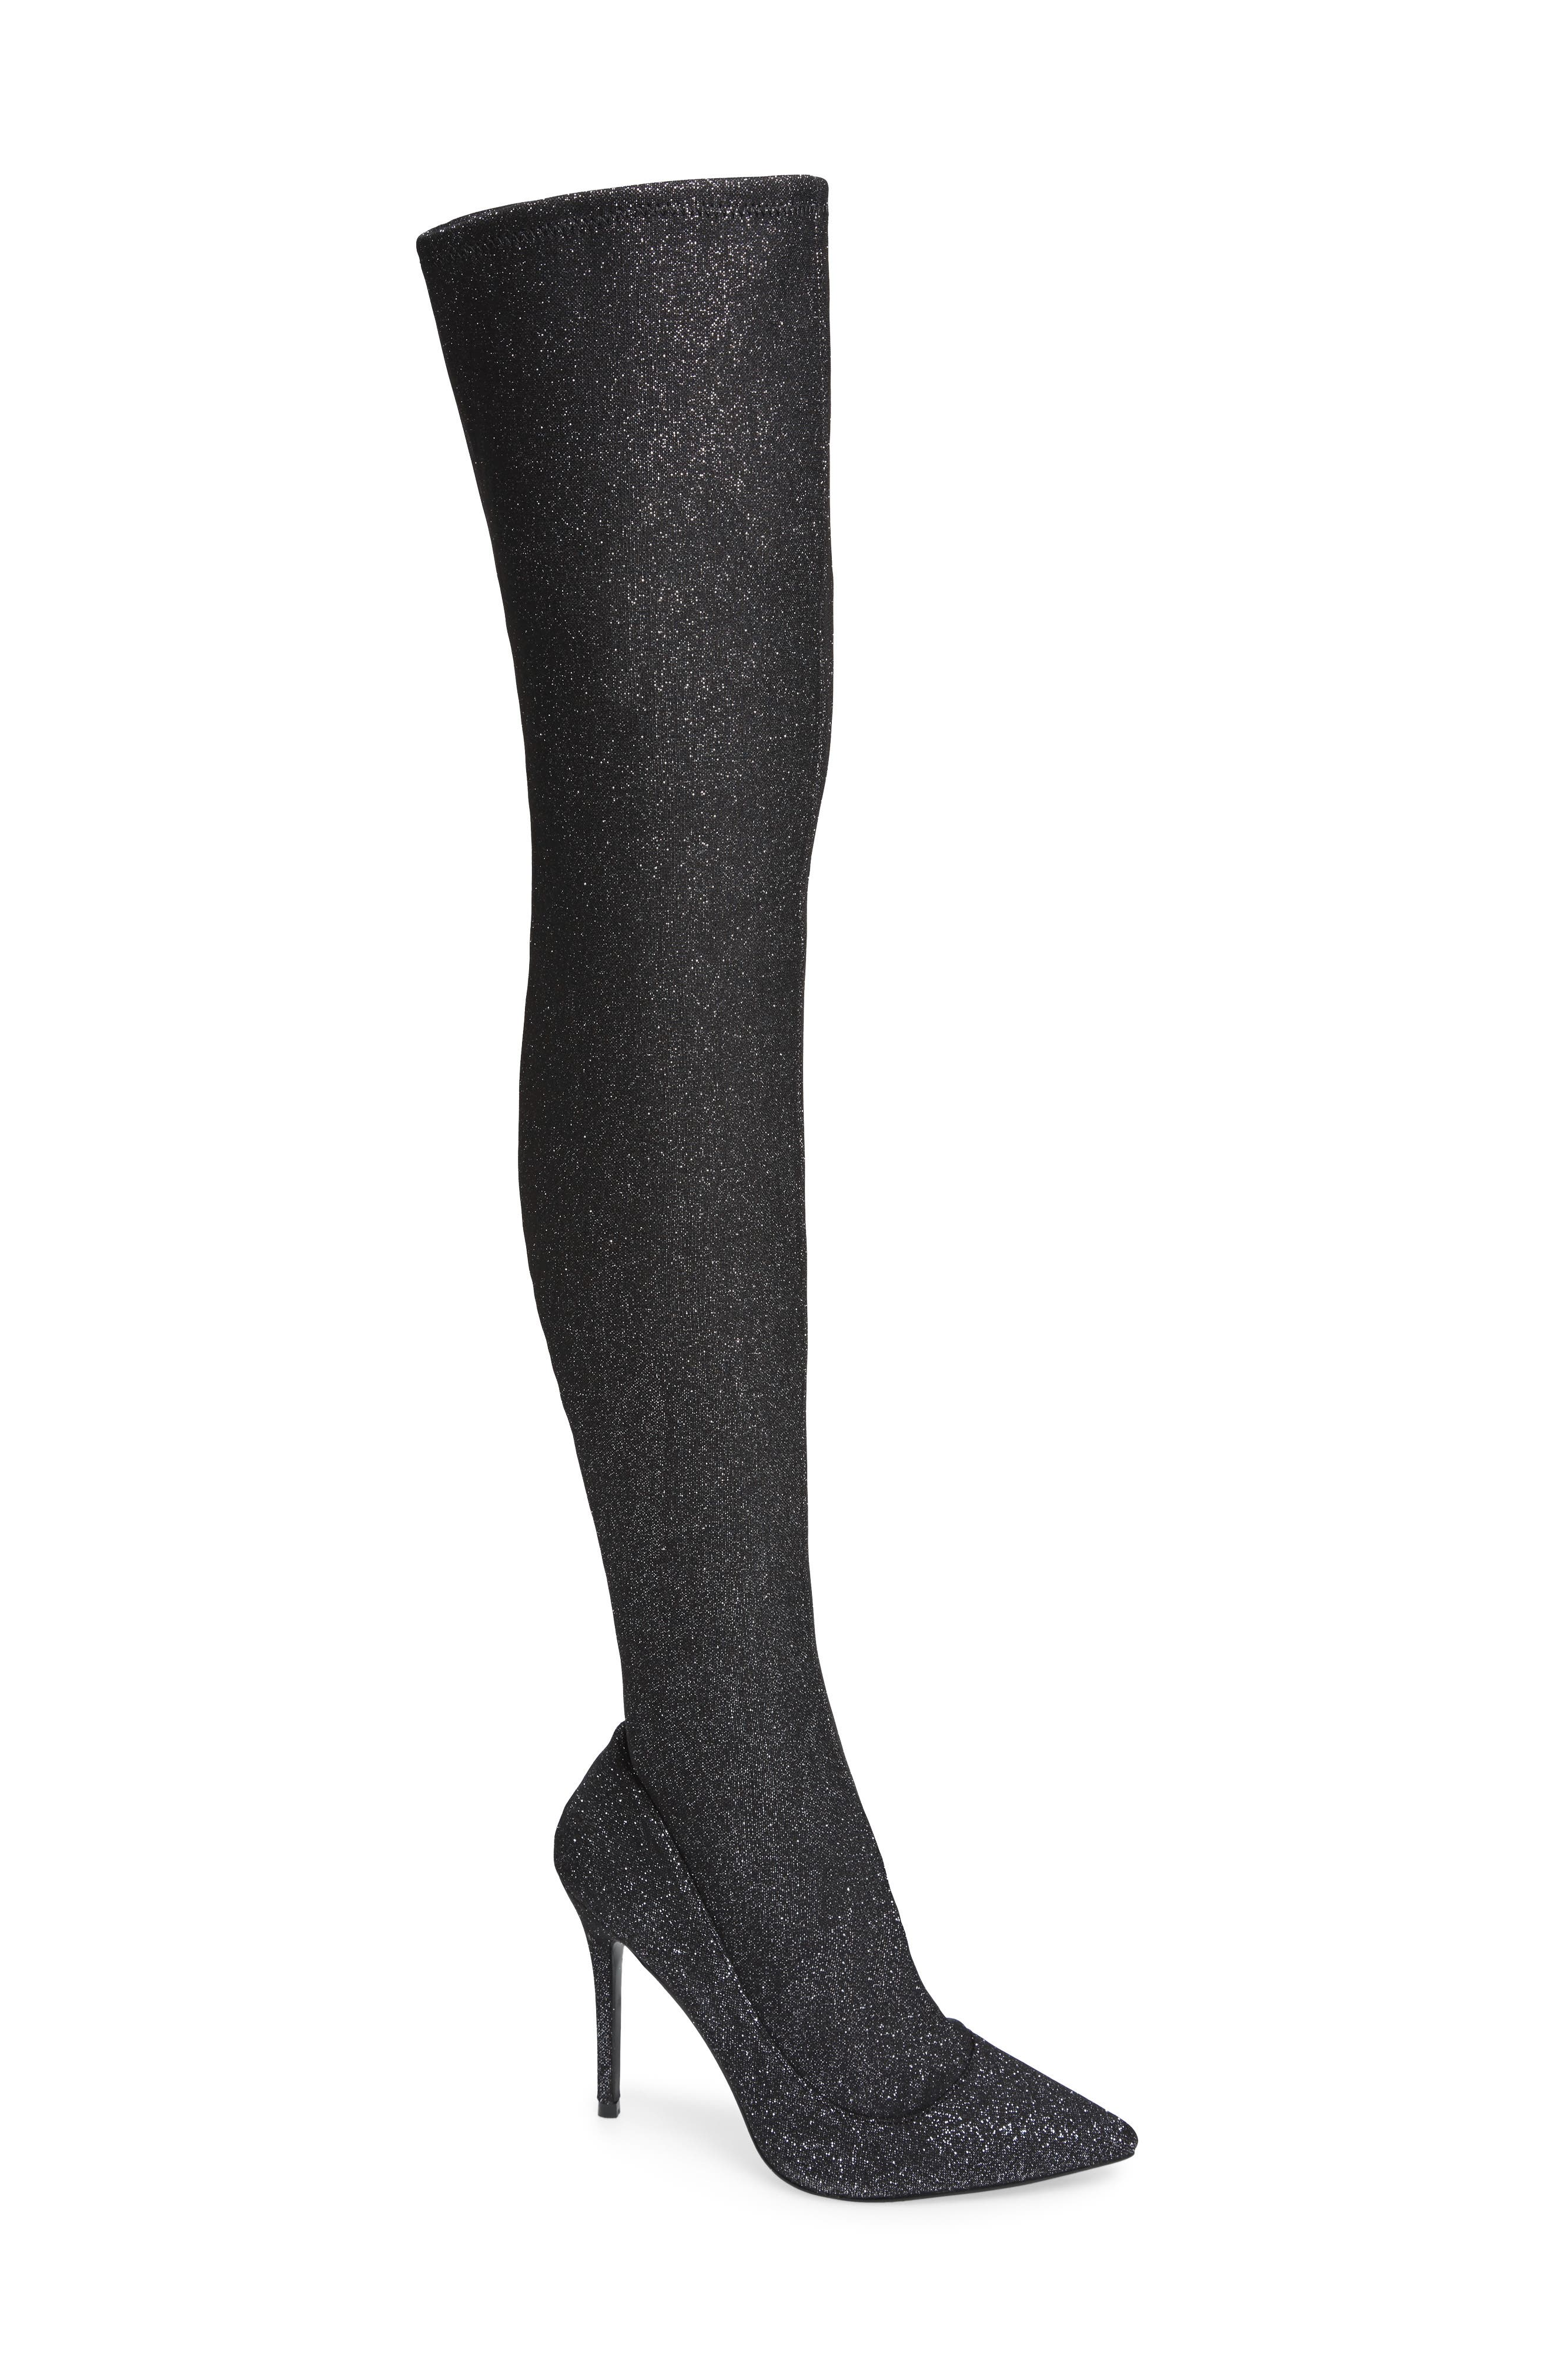 Alternate Image 1 Selected - Topshop Bellini Stiletto Over the Knee Boot (Women)